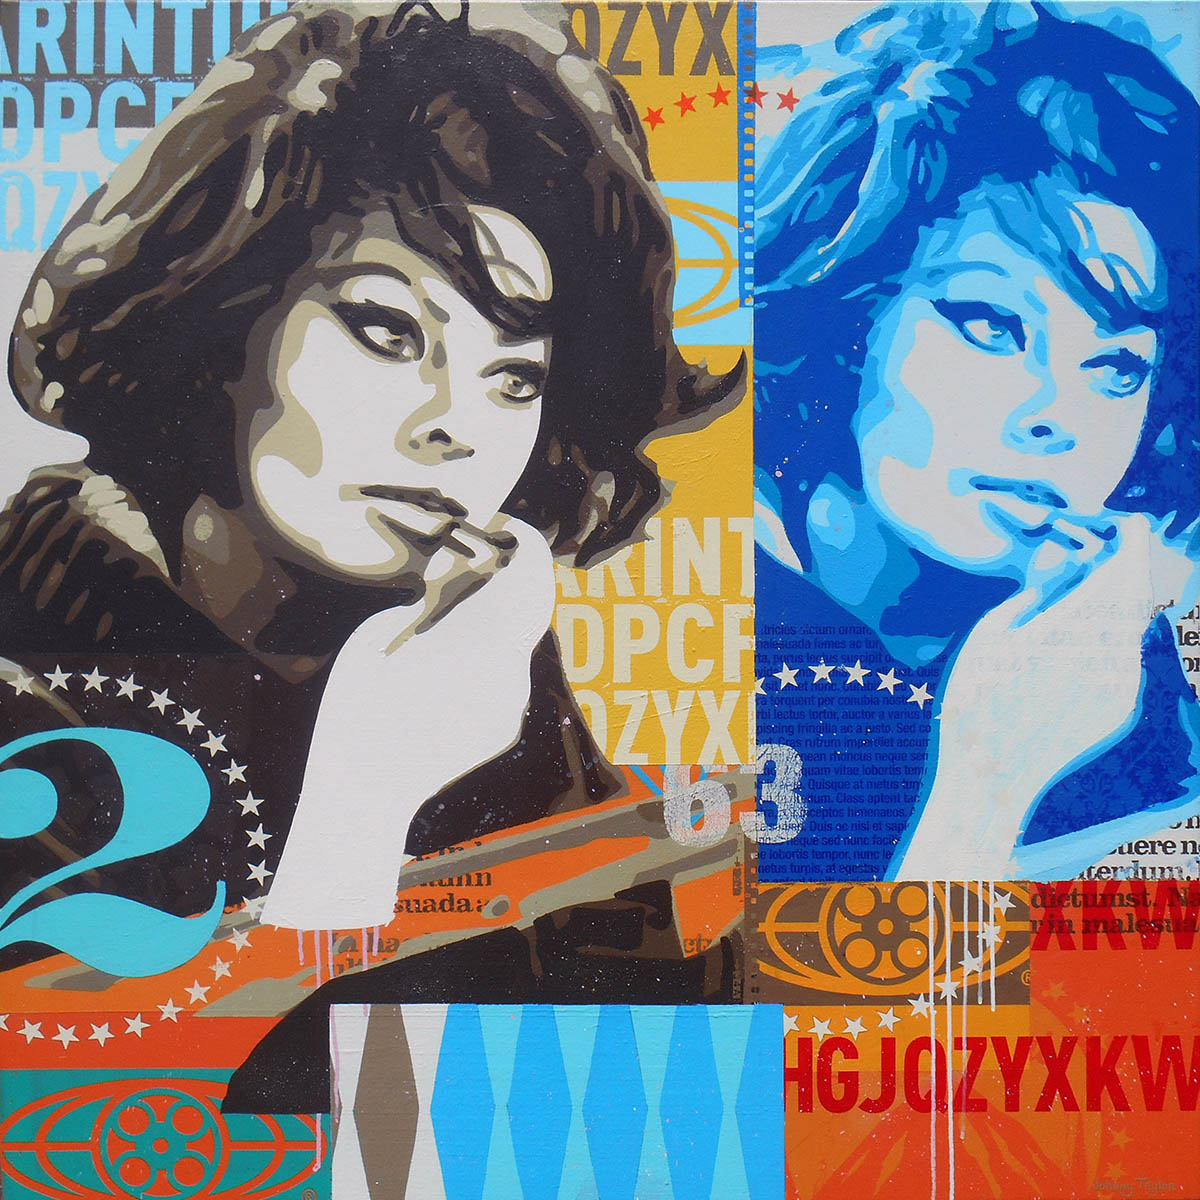 Sophia Loren pop art by Johnny Taylor